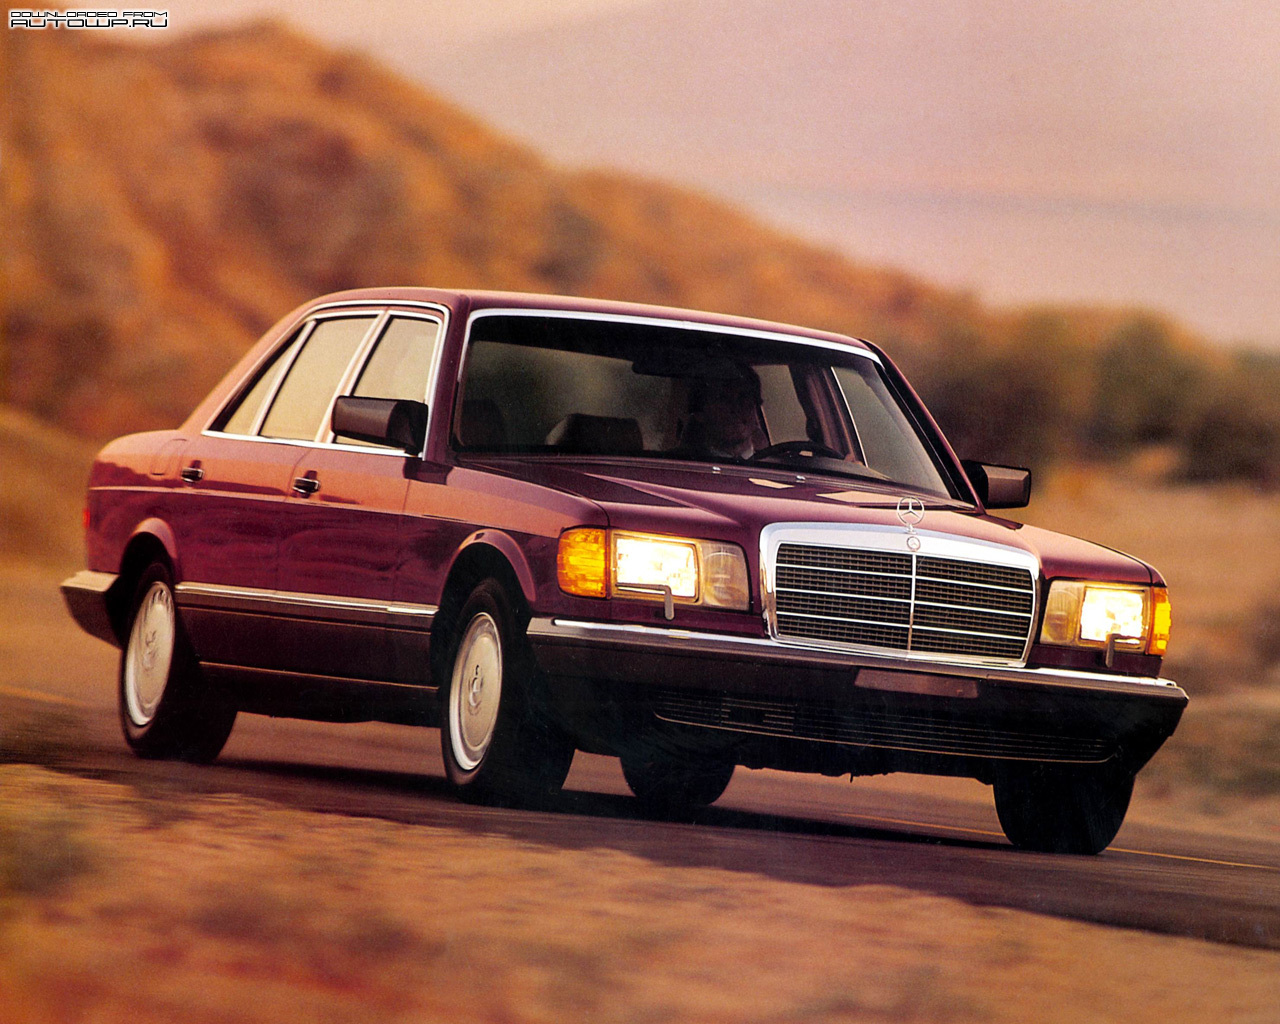 Mercedes benz s class w126 picture 76823 mercedes benz for Mercedes benz w126